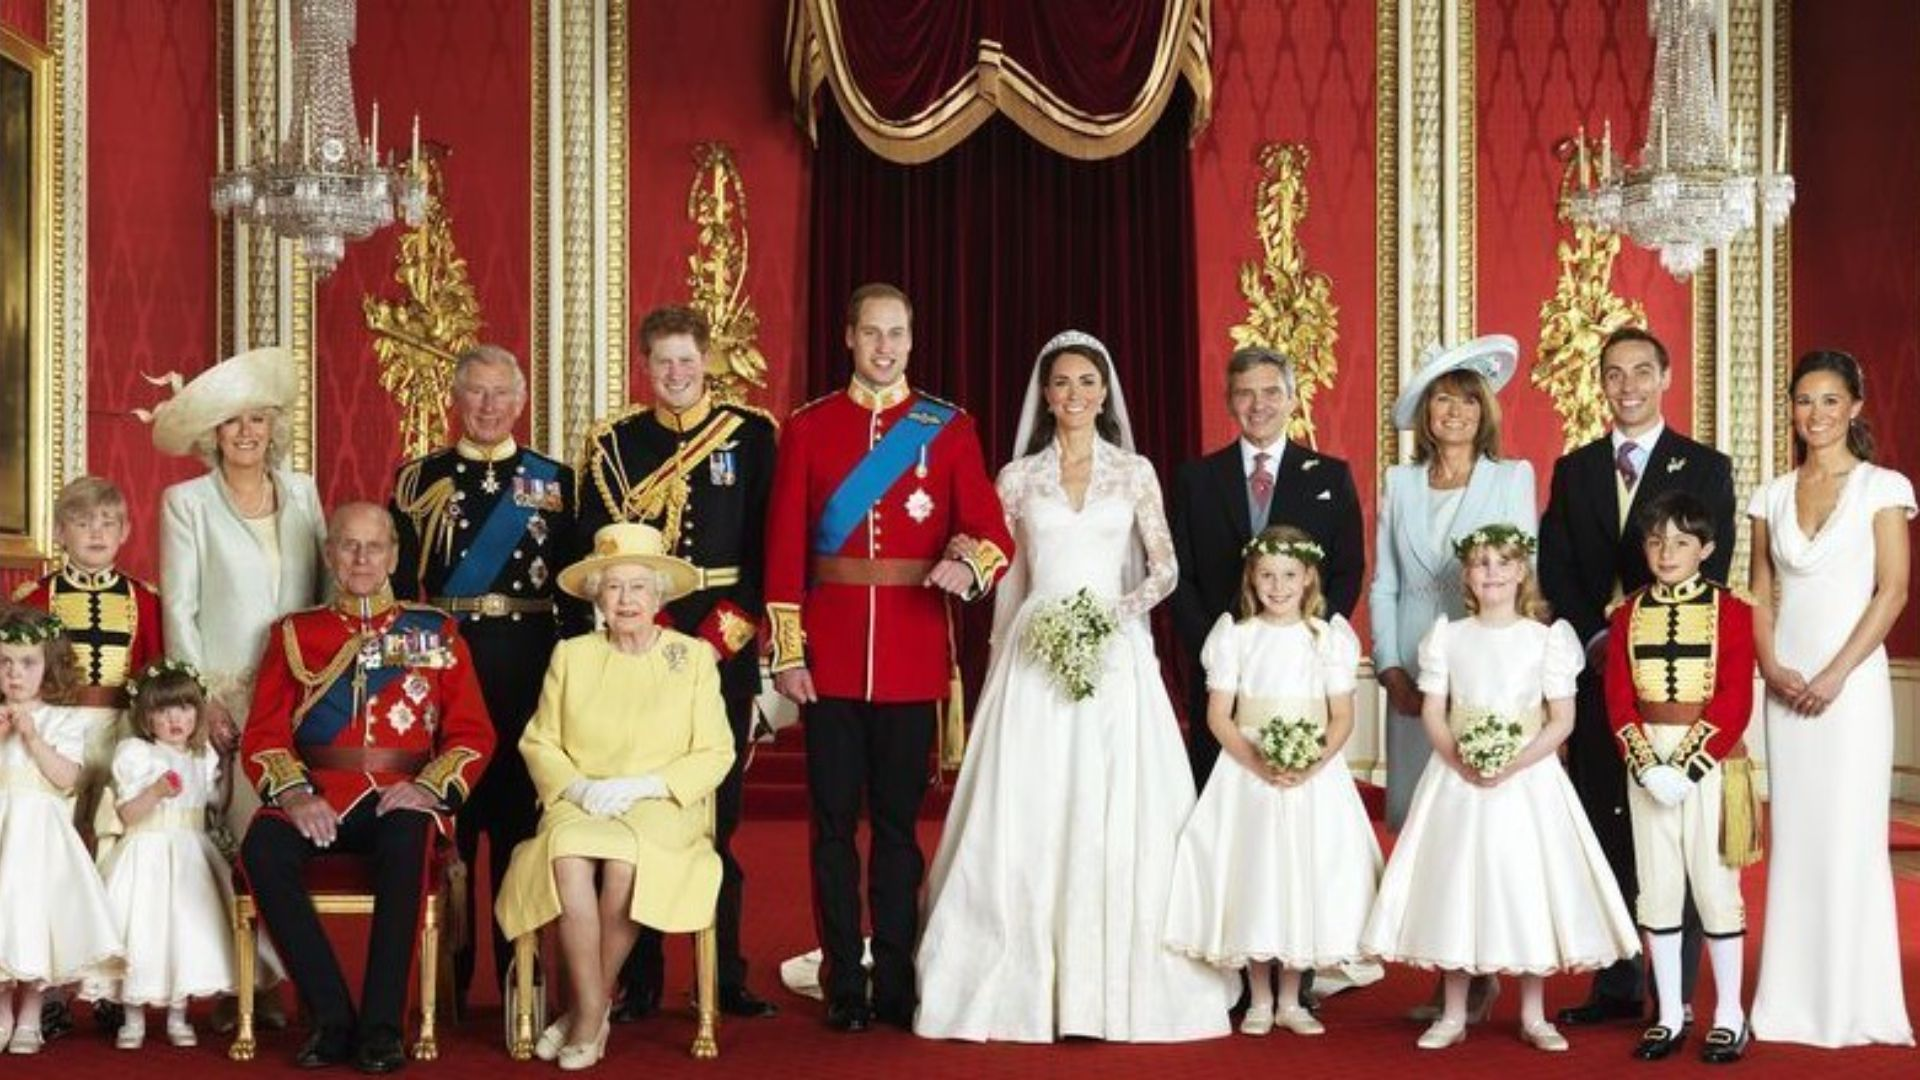 Exploring whiteness, race and the British Royal Family